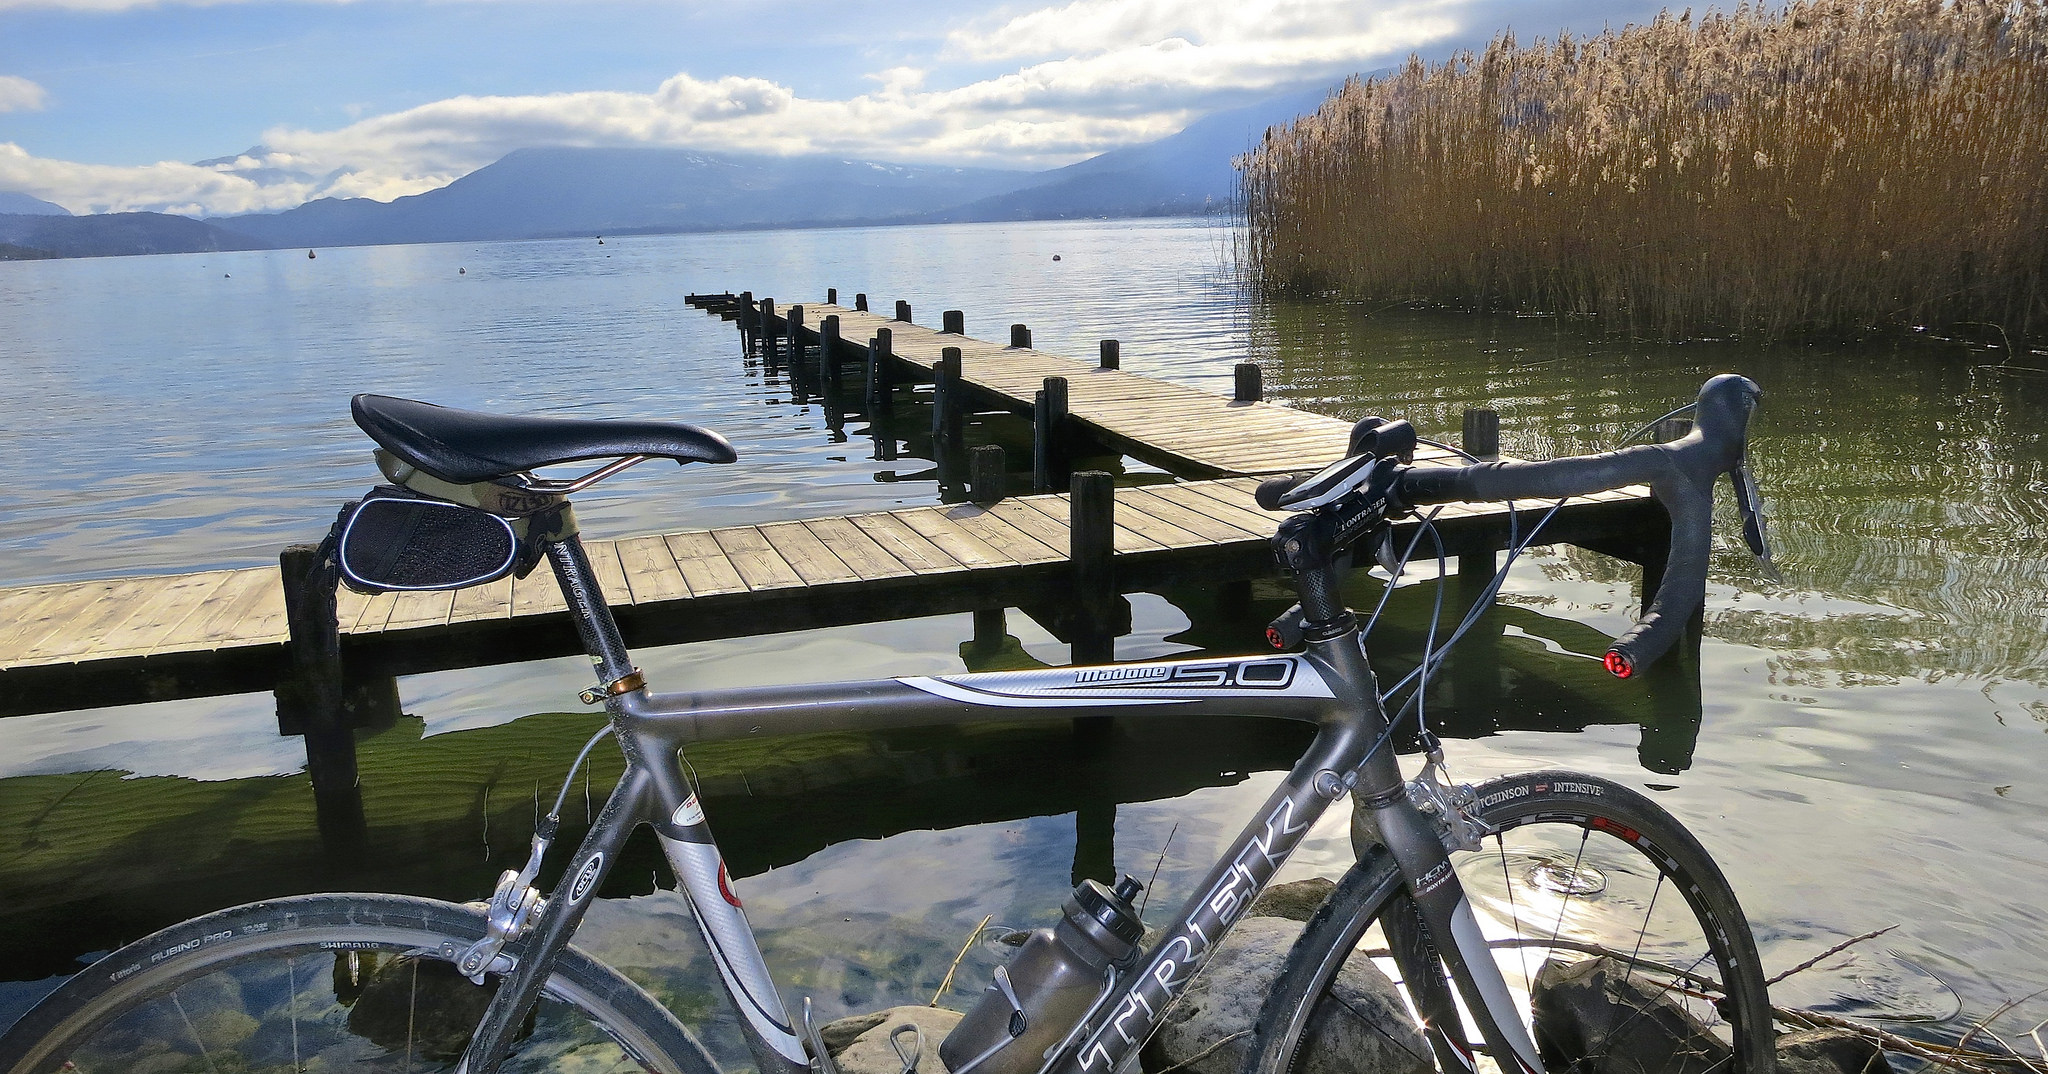 Cycling in Annecy